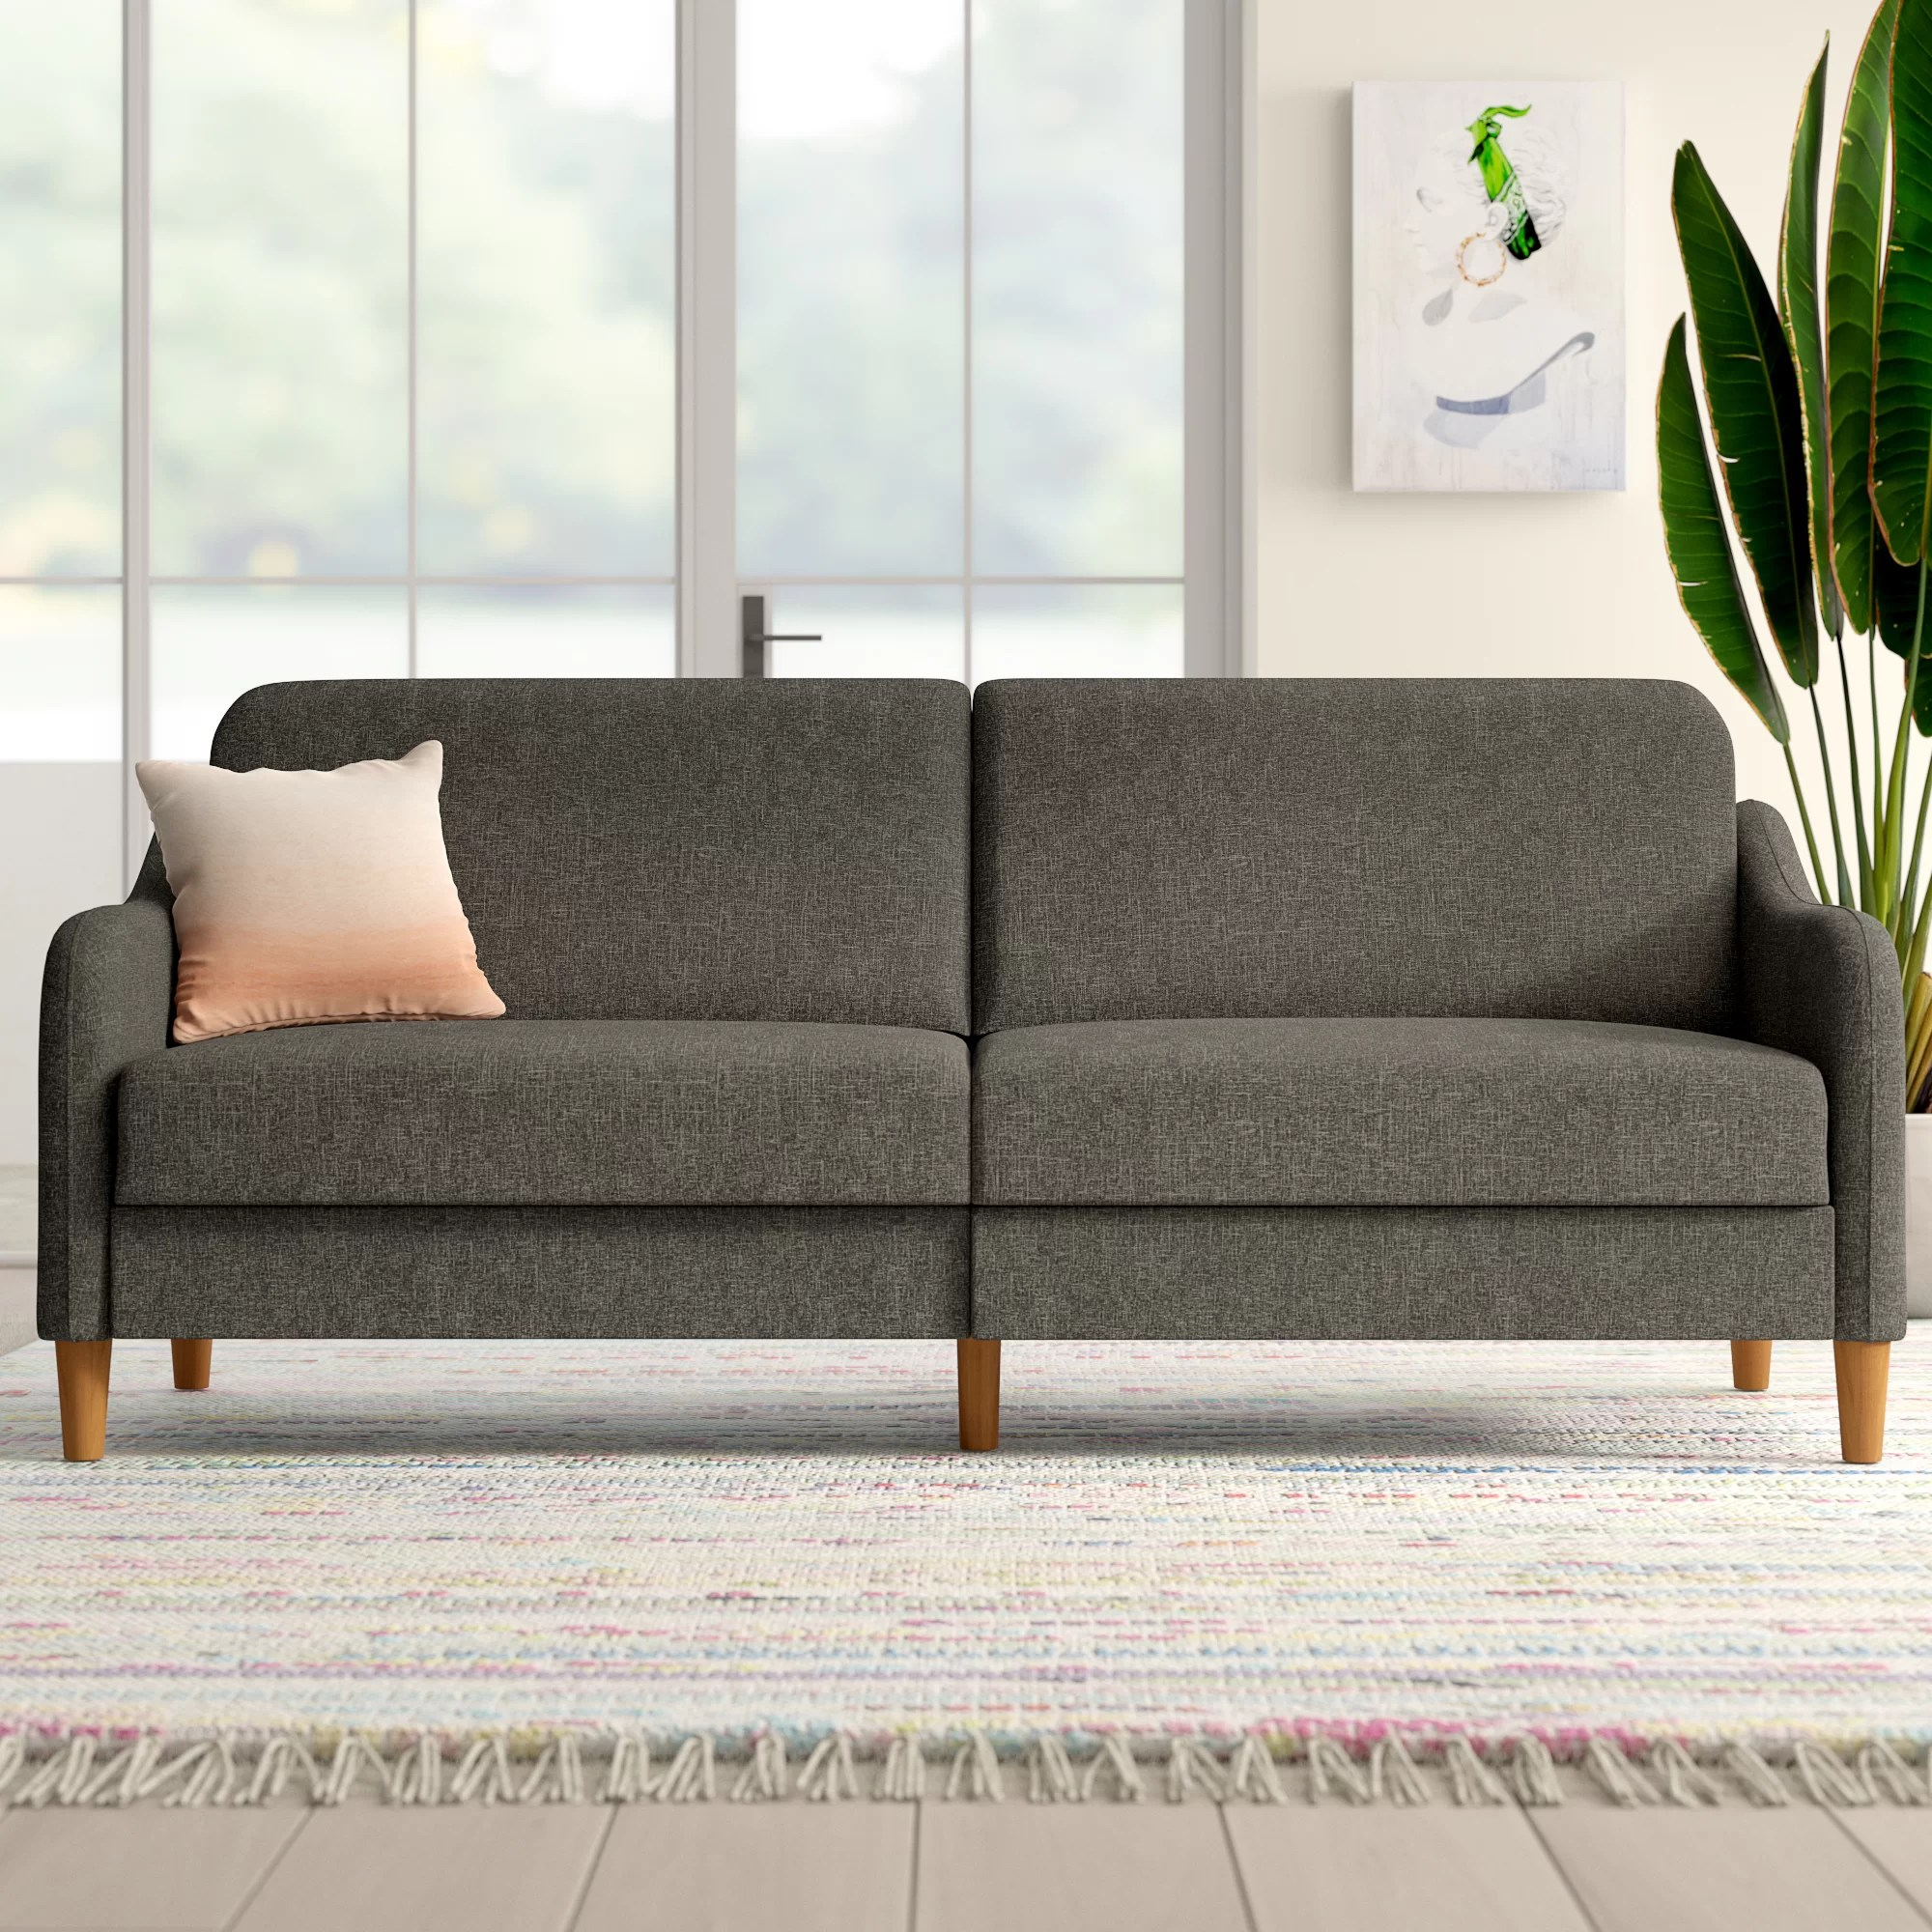 Big Couch Garnitur Modern Contemporary Memory Foam Sofa Allmodern